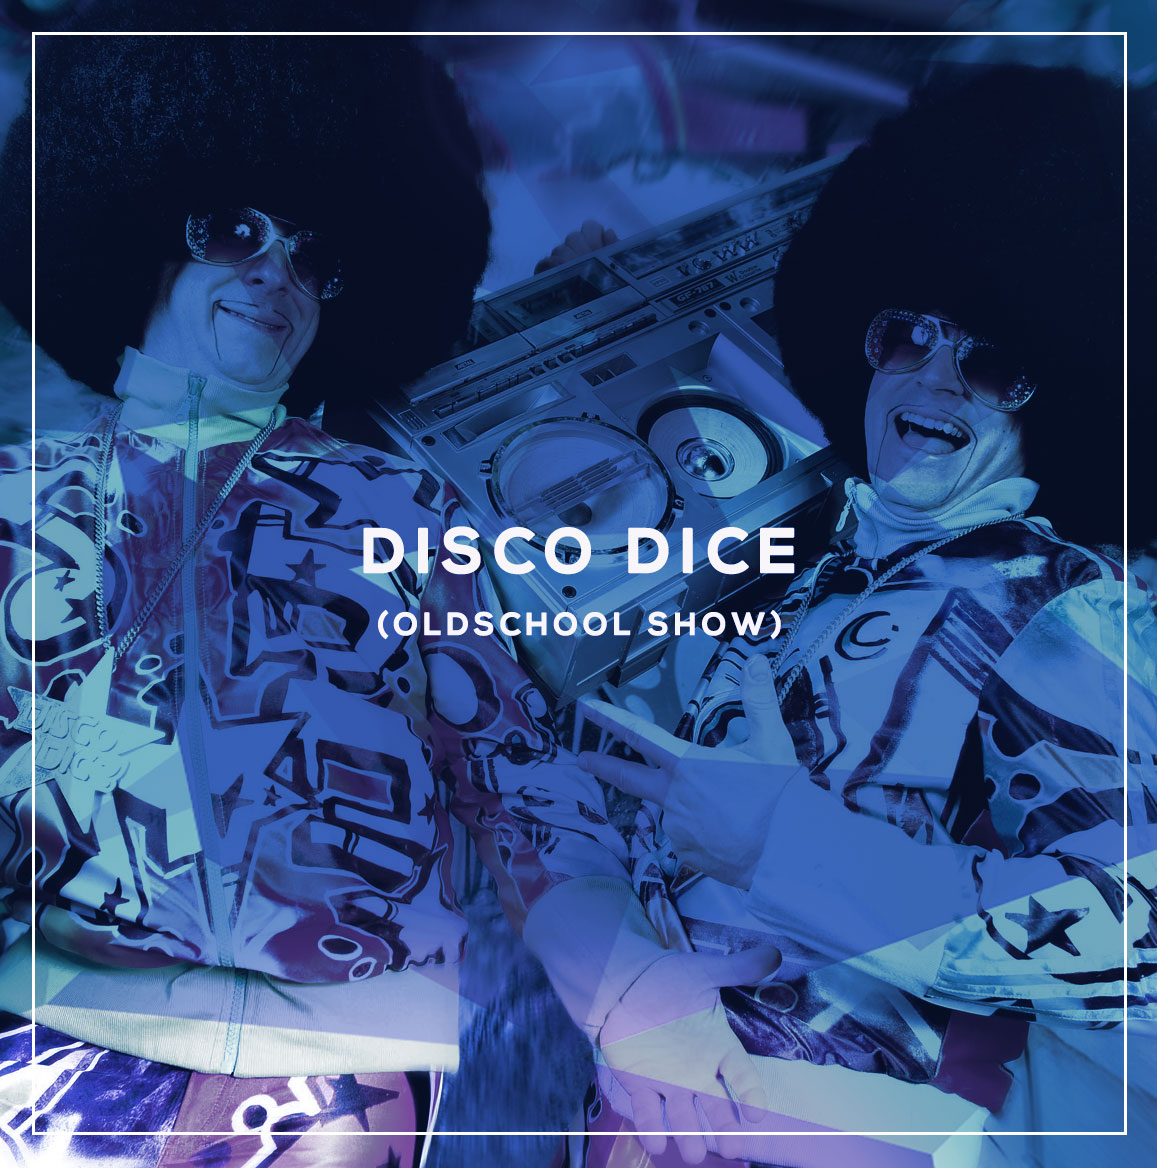 HP-Act-disco-dice